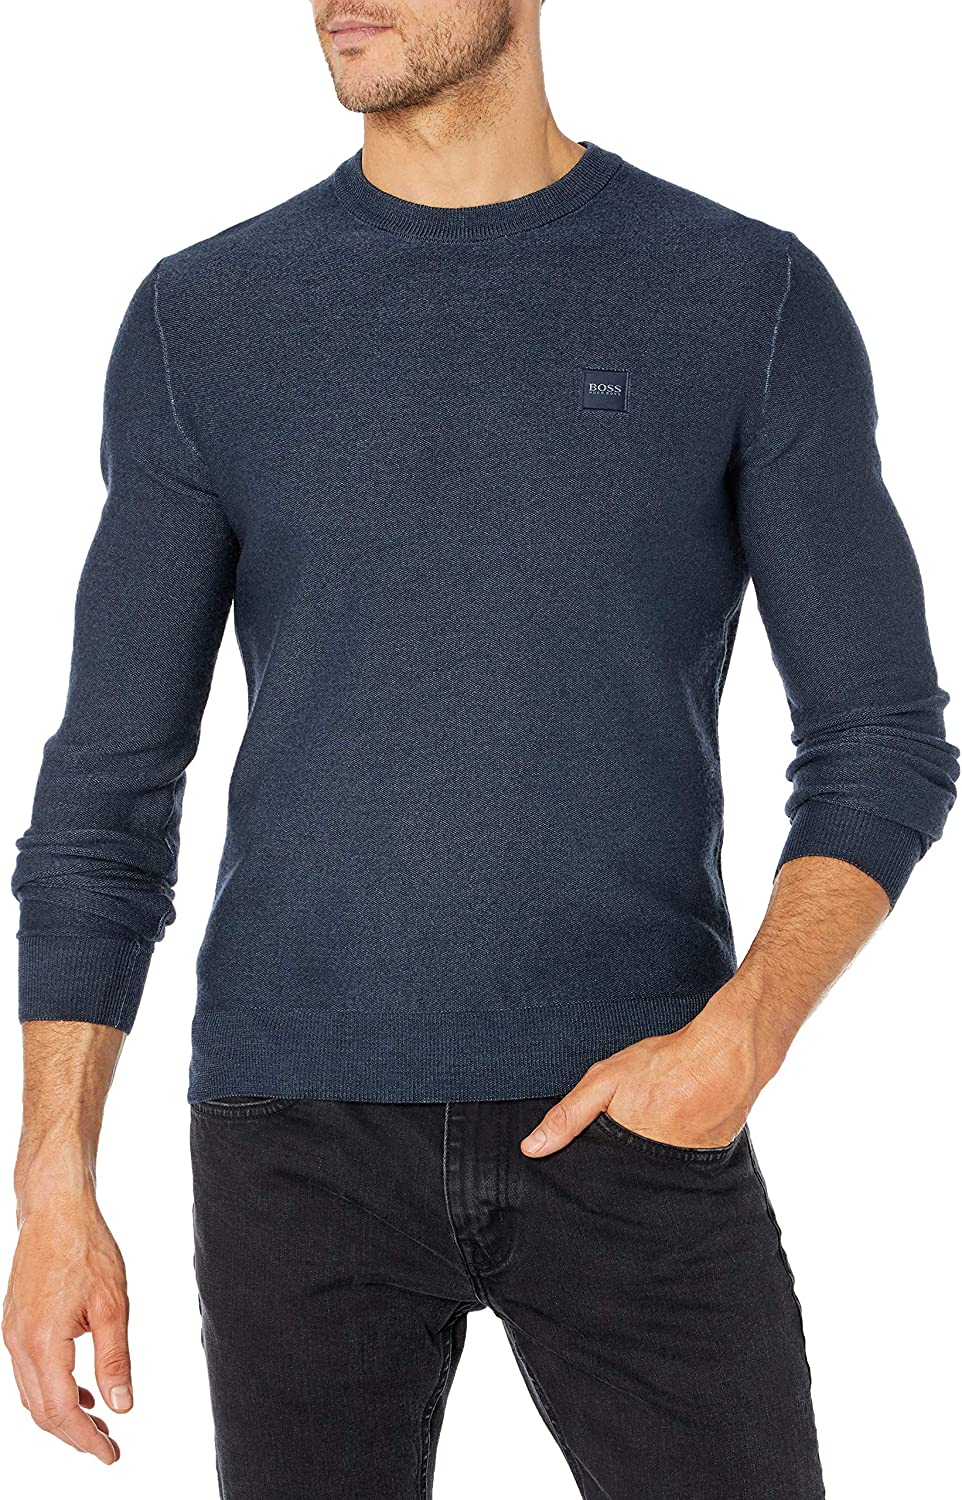 Hugo Boss Clearance SALE Limited time Men's Ranking TOP16 Knit Logo Sweater